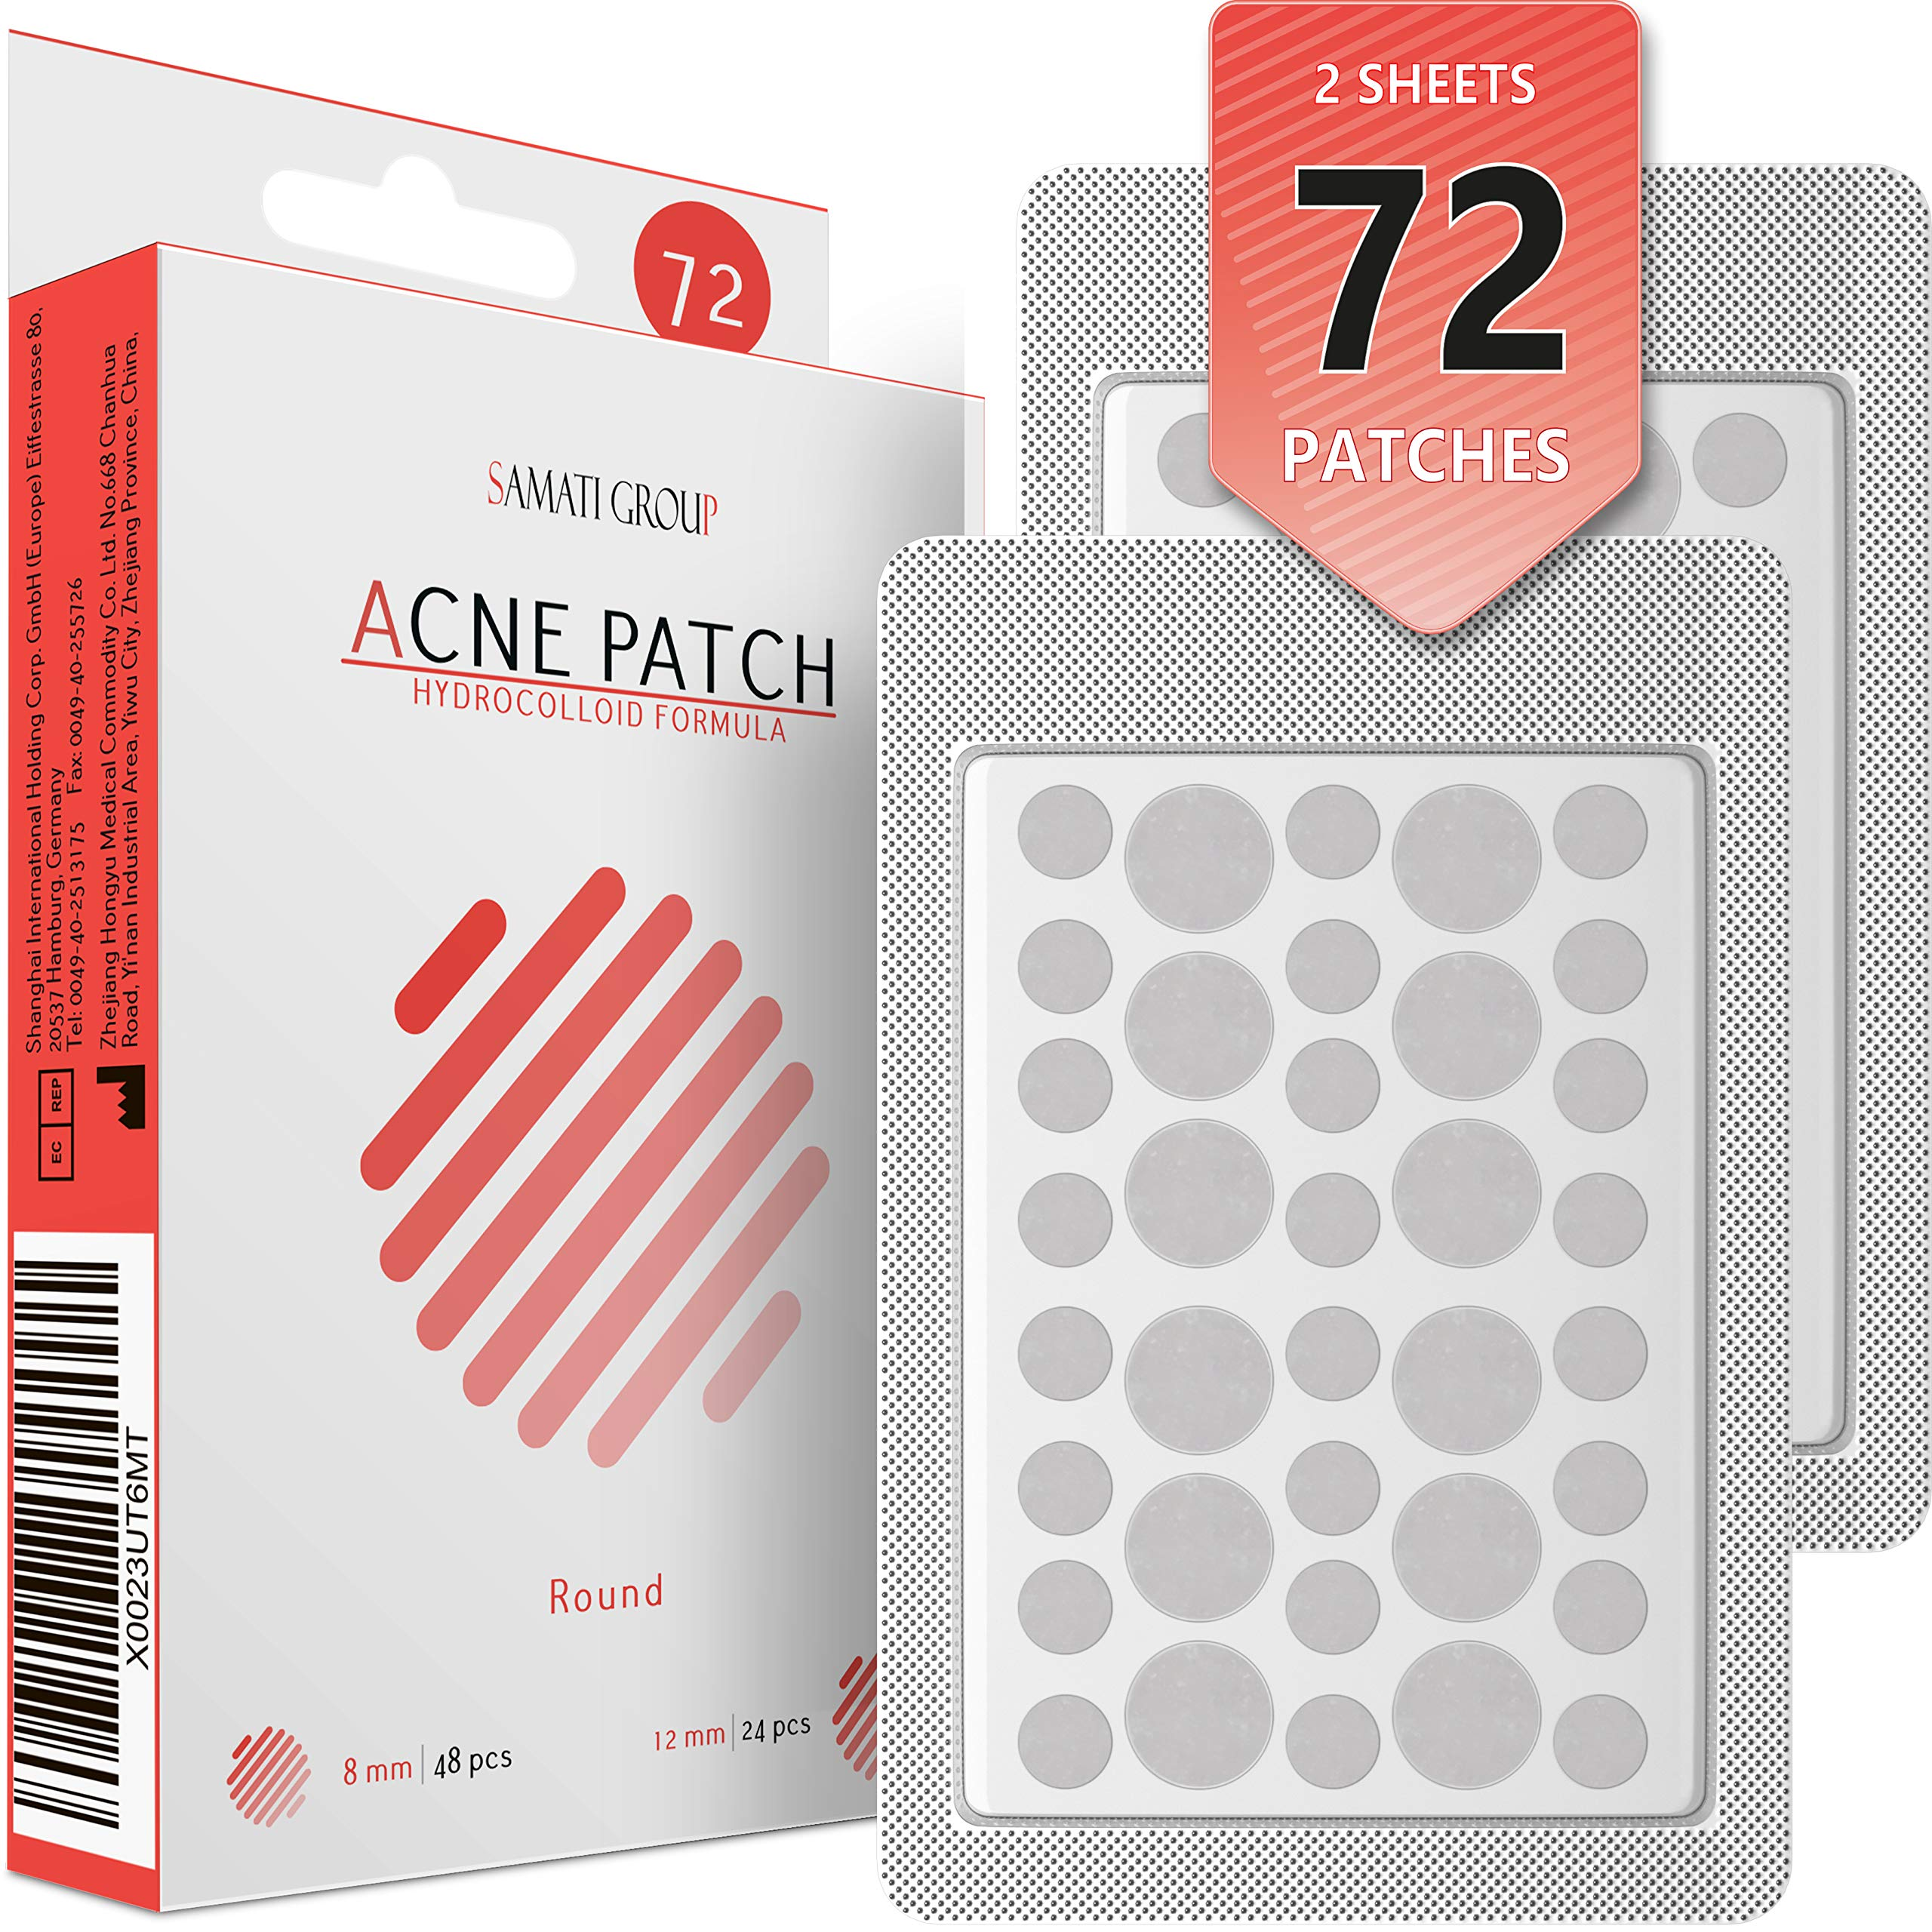 Acne Pimple Master Patch 72 dots - Absorbing Hydrocolloid Blemish Spot Skin Treatment and Care Dressing by SAMATI GROUP